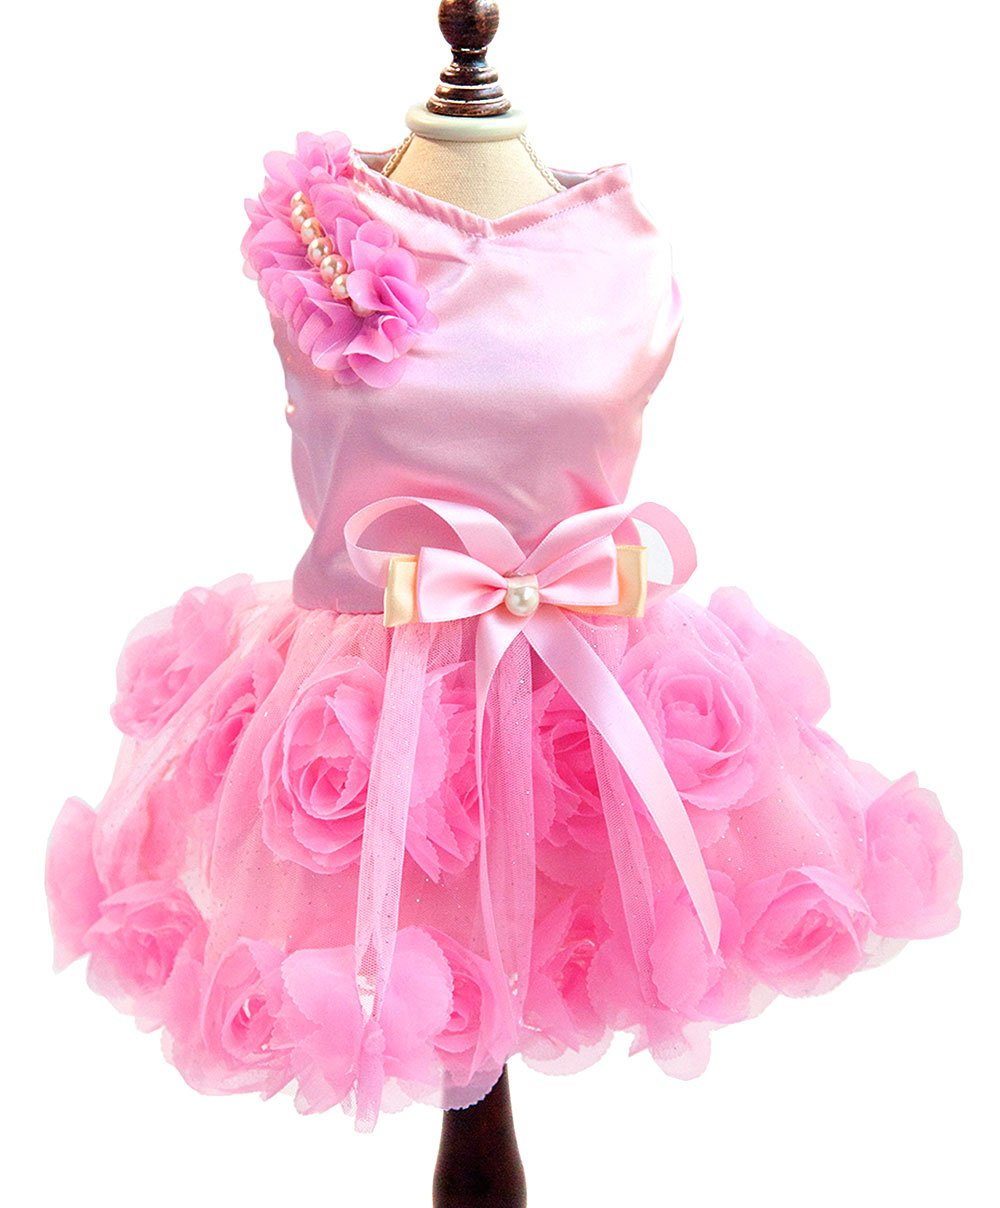 SMALLLEE_LUCKY_STORE Pet Small Dog Puppy Cat Clothes Coat Wedding Costume Satin Rose Formal Dress Tutu Pink L